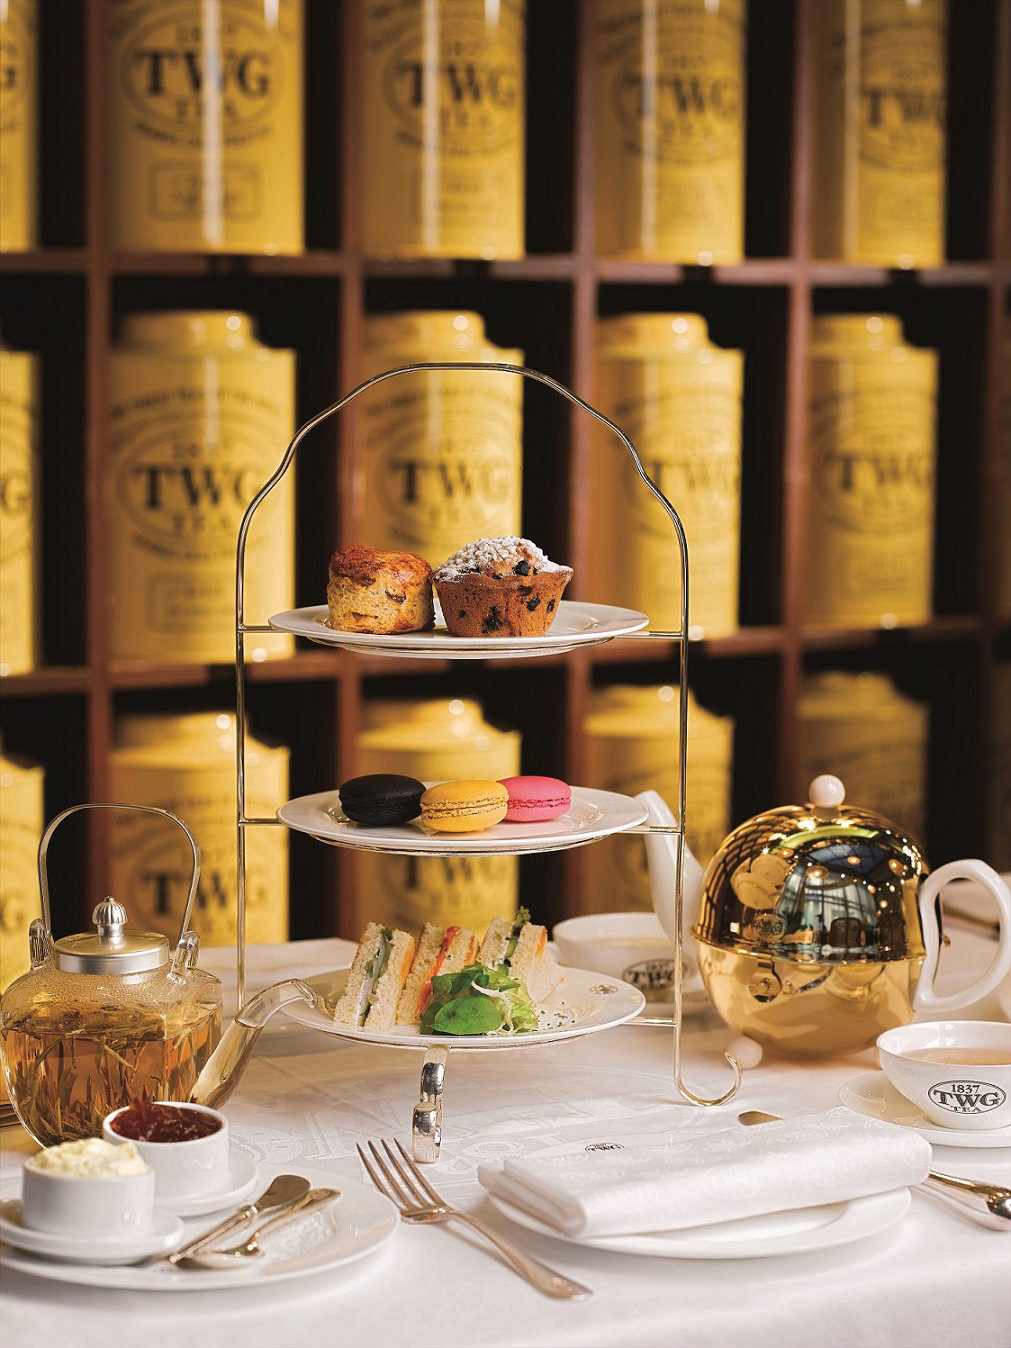 TWG Tea Celebration Tea Set